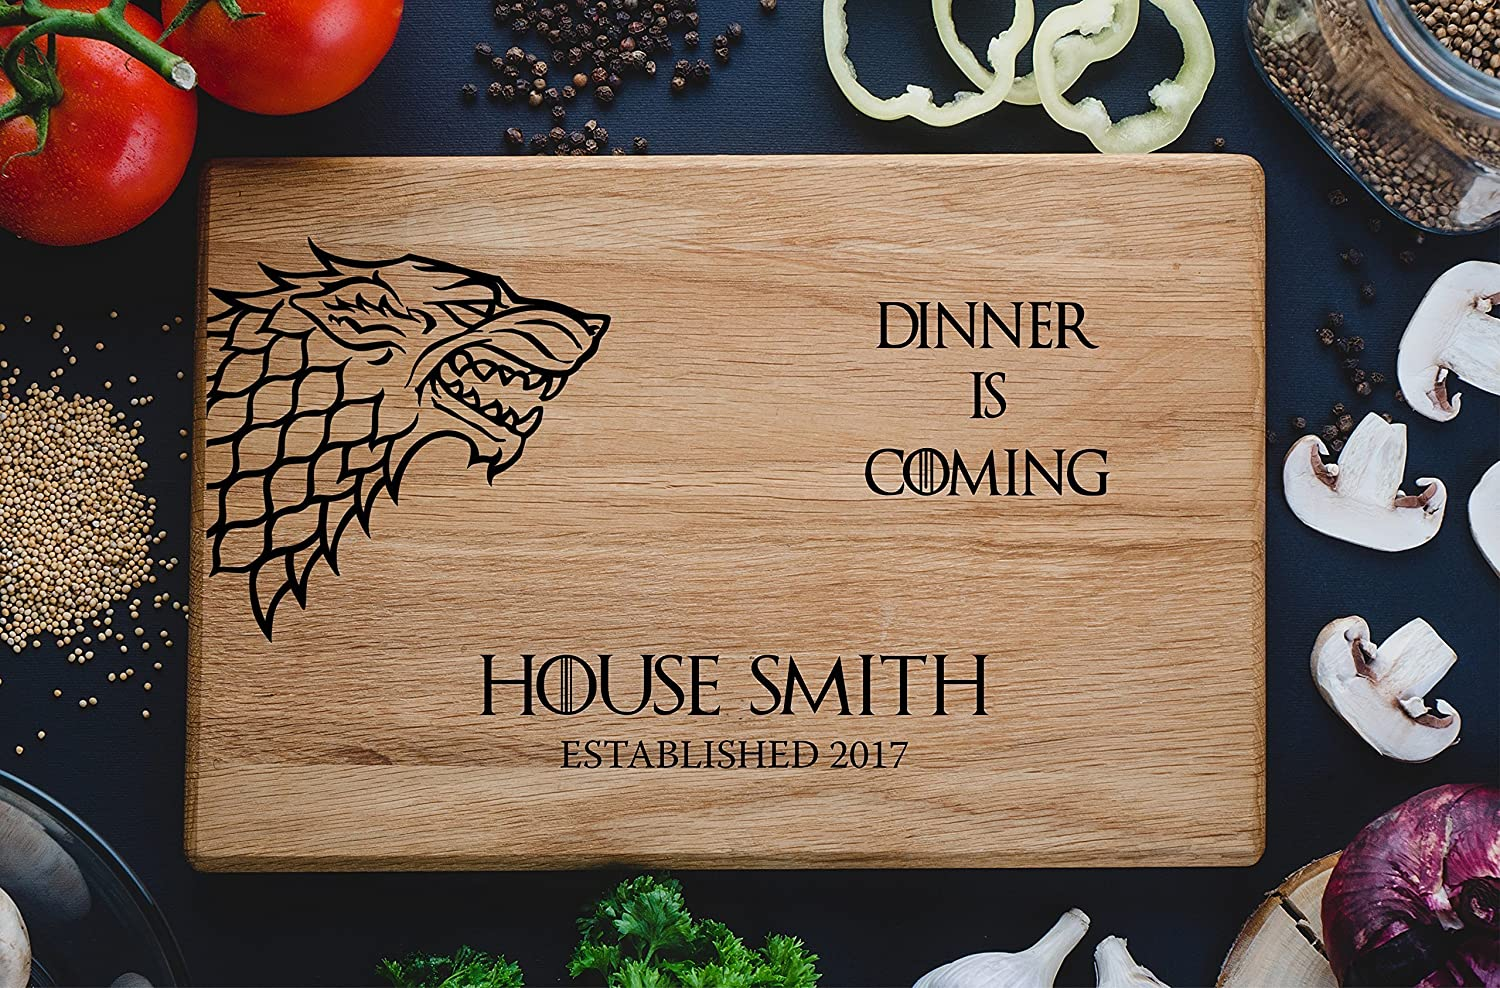 Personalized Cutting Board Dinner is coming Games of thrones House Stark Direwolf Engraved Custom Family chopping Wedding Gift Anniversary Housewarming Birthday Christmas game01